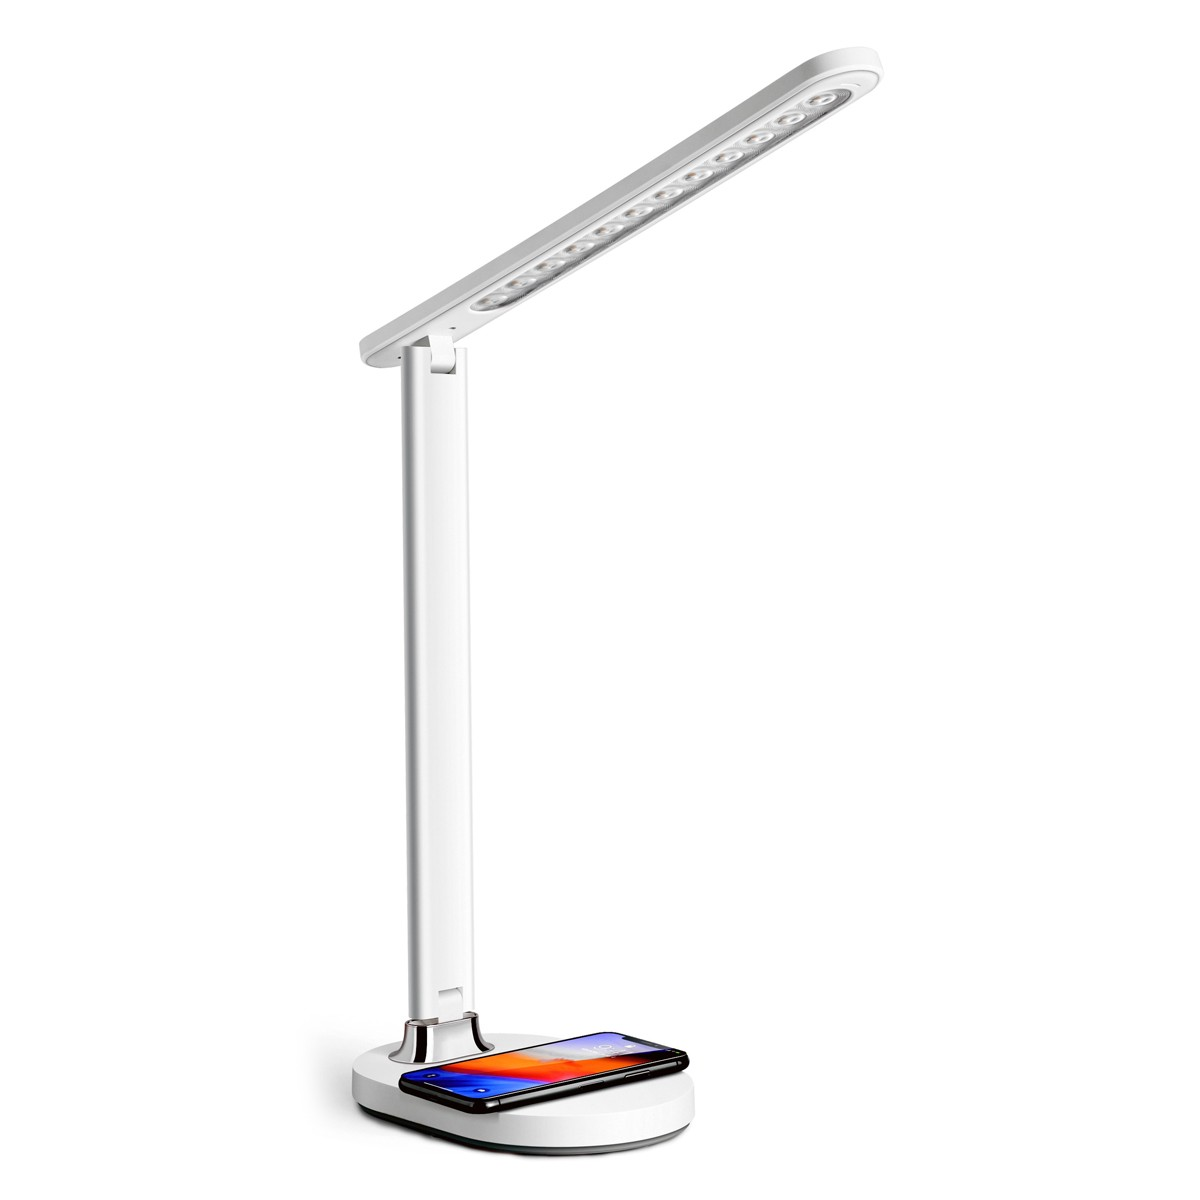 Image of: Platinet Desk Lamp 18w With Wireless Charging White Price Dice Bg